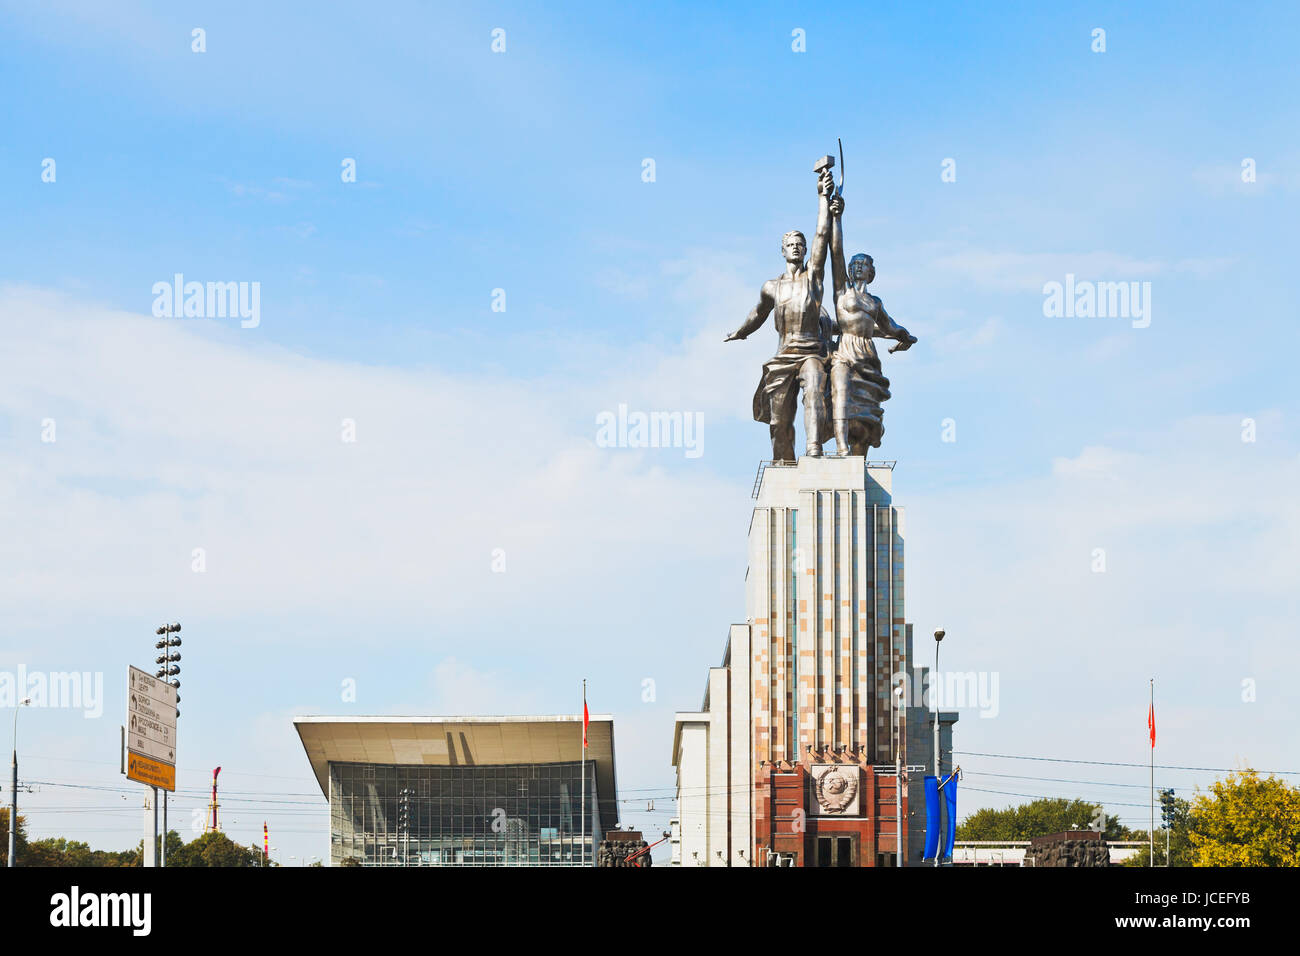 MOSCOW, RUSSIA - SEPTEMBER 13, 2014: Rabochiy i Kolkhoznitsa (Worker and Kolkhoz Woman) monument in Moscow. The - Stock Image